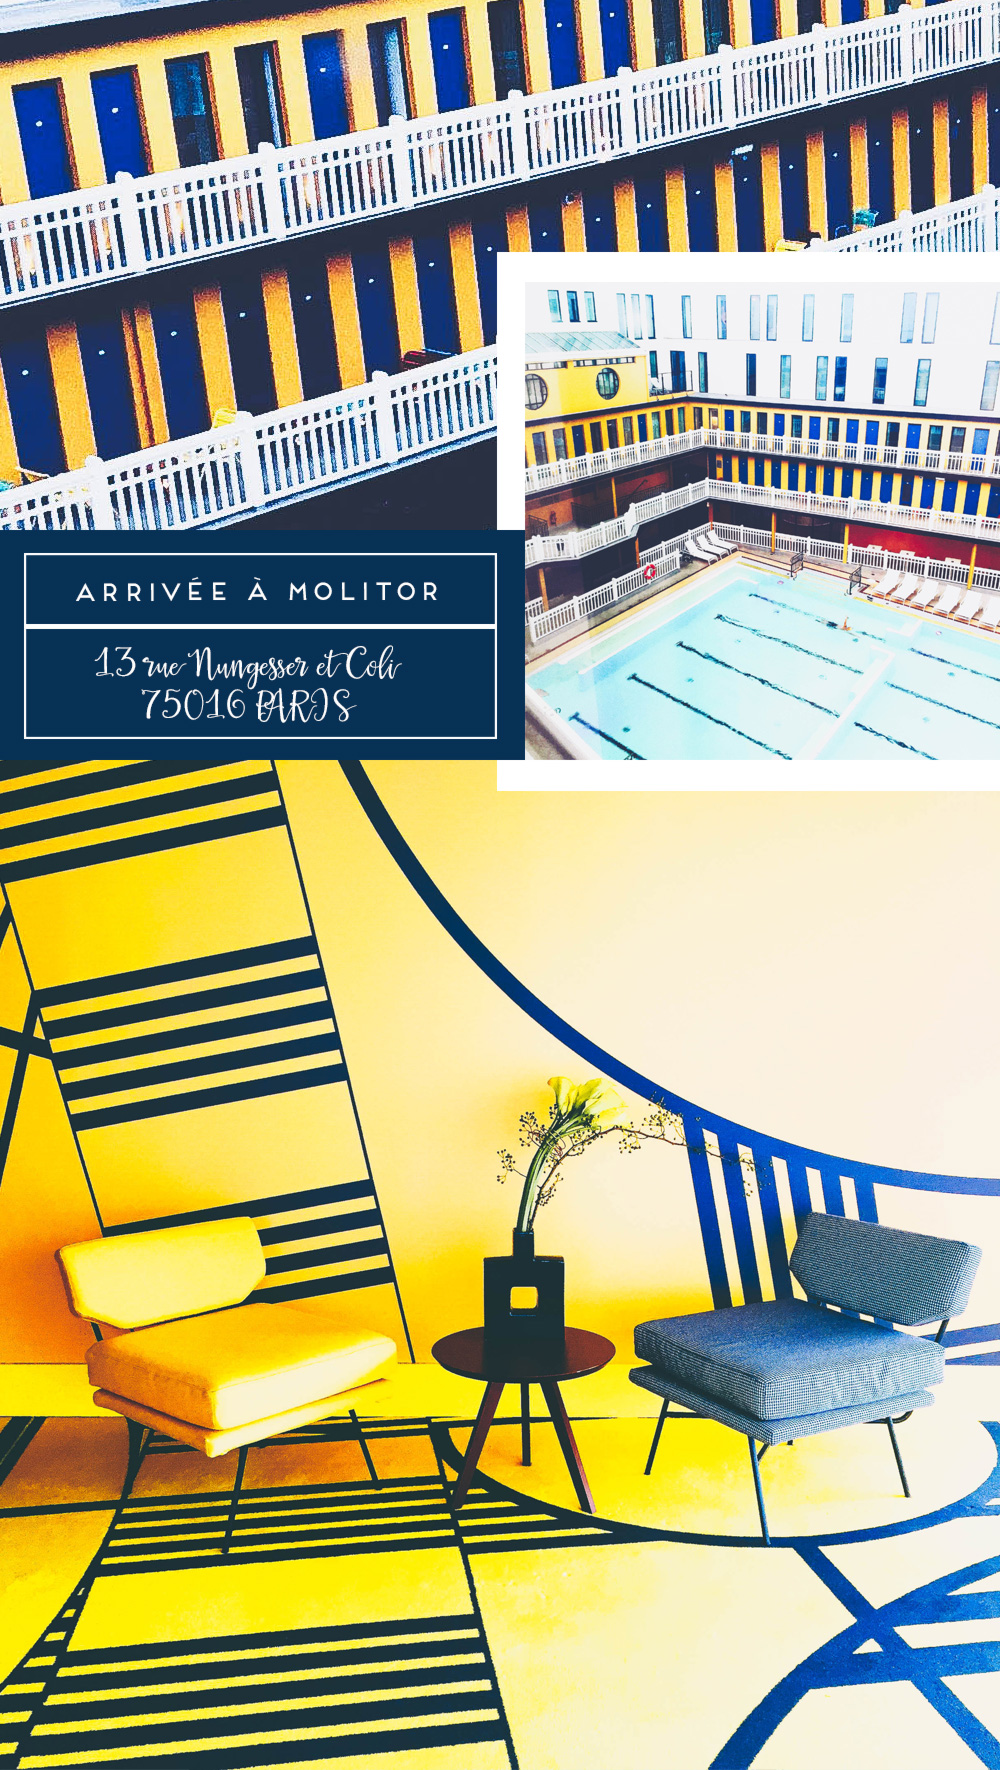 hotel-molitor-spa-clarins-mademoiselle-stef-2